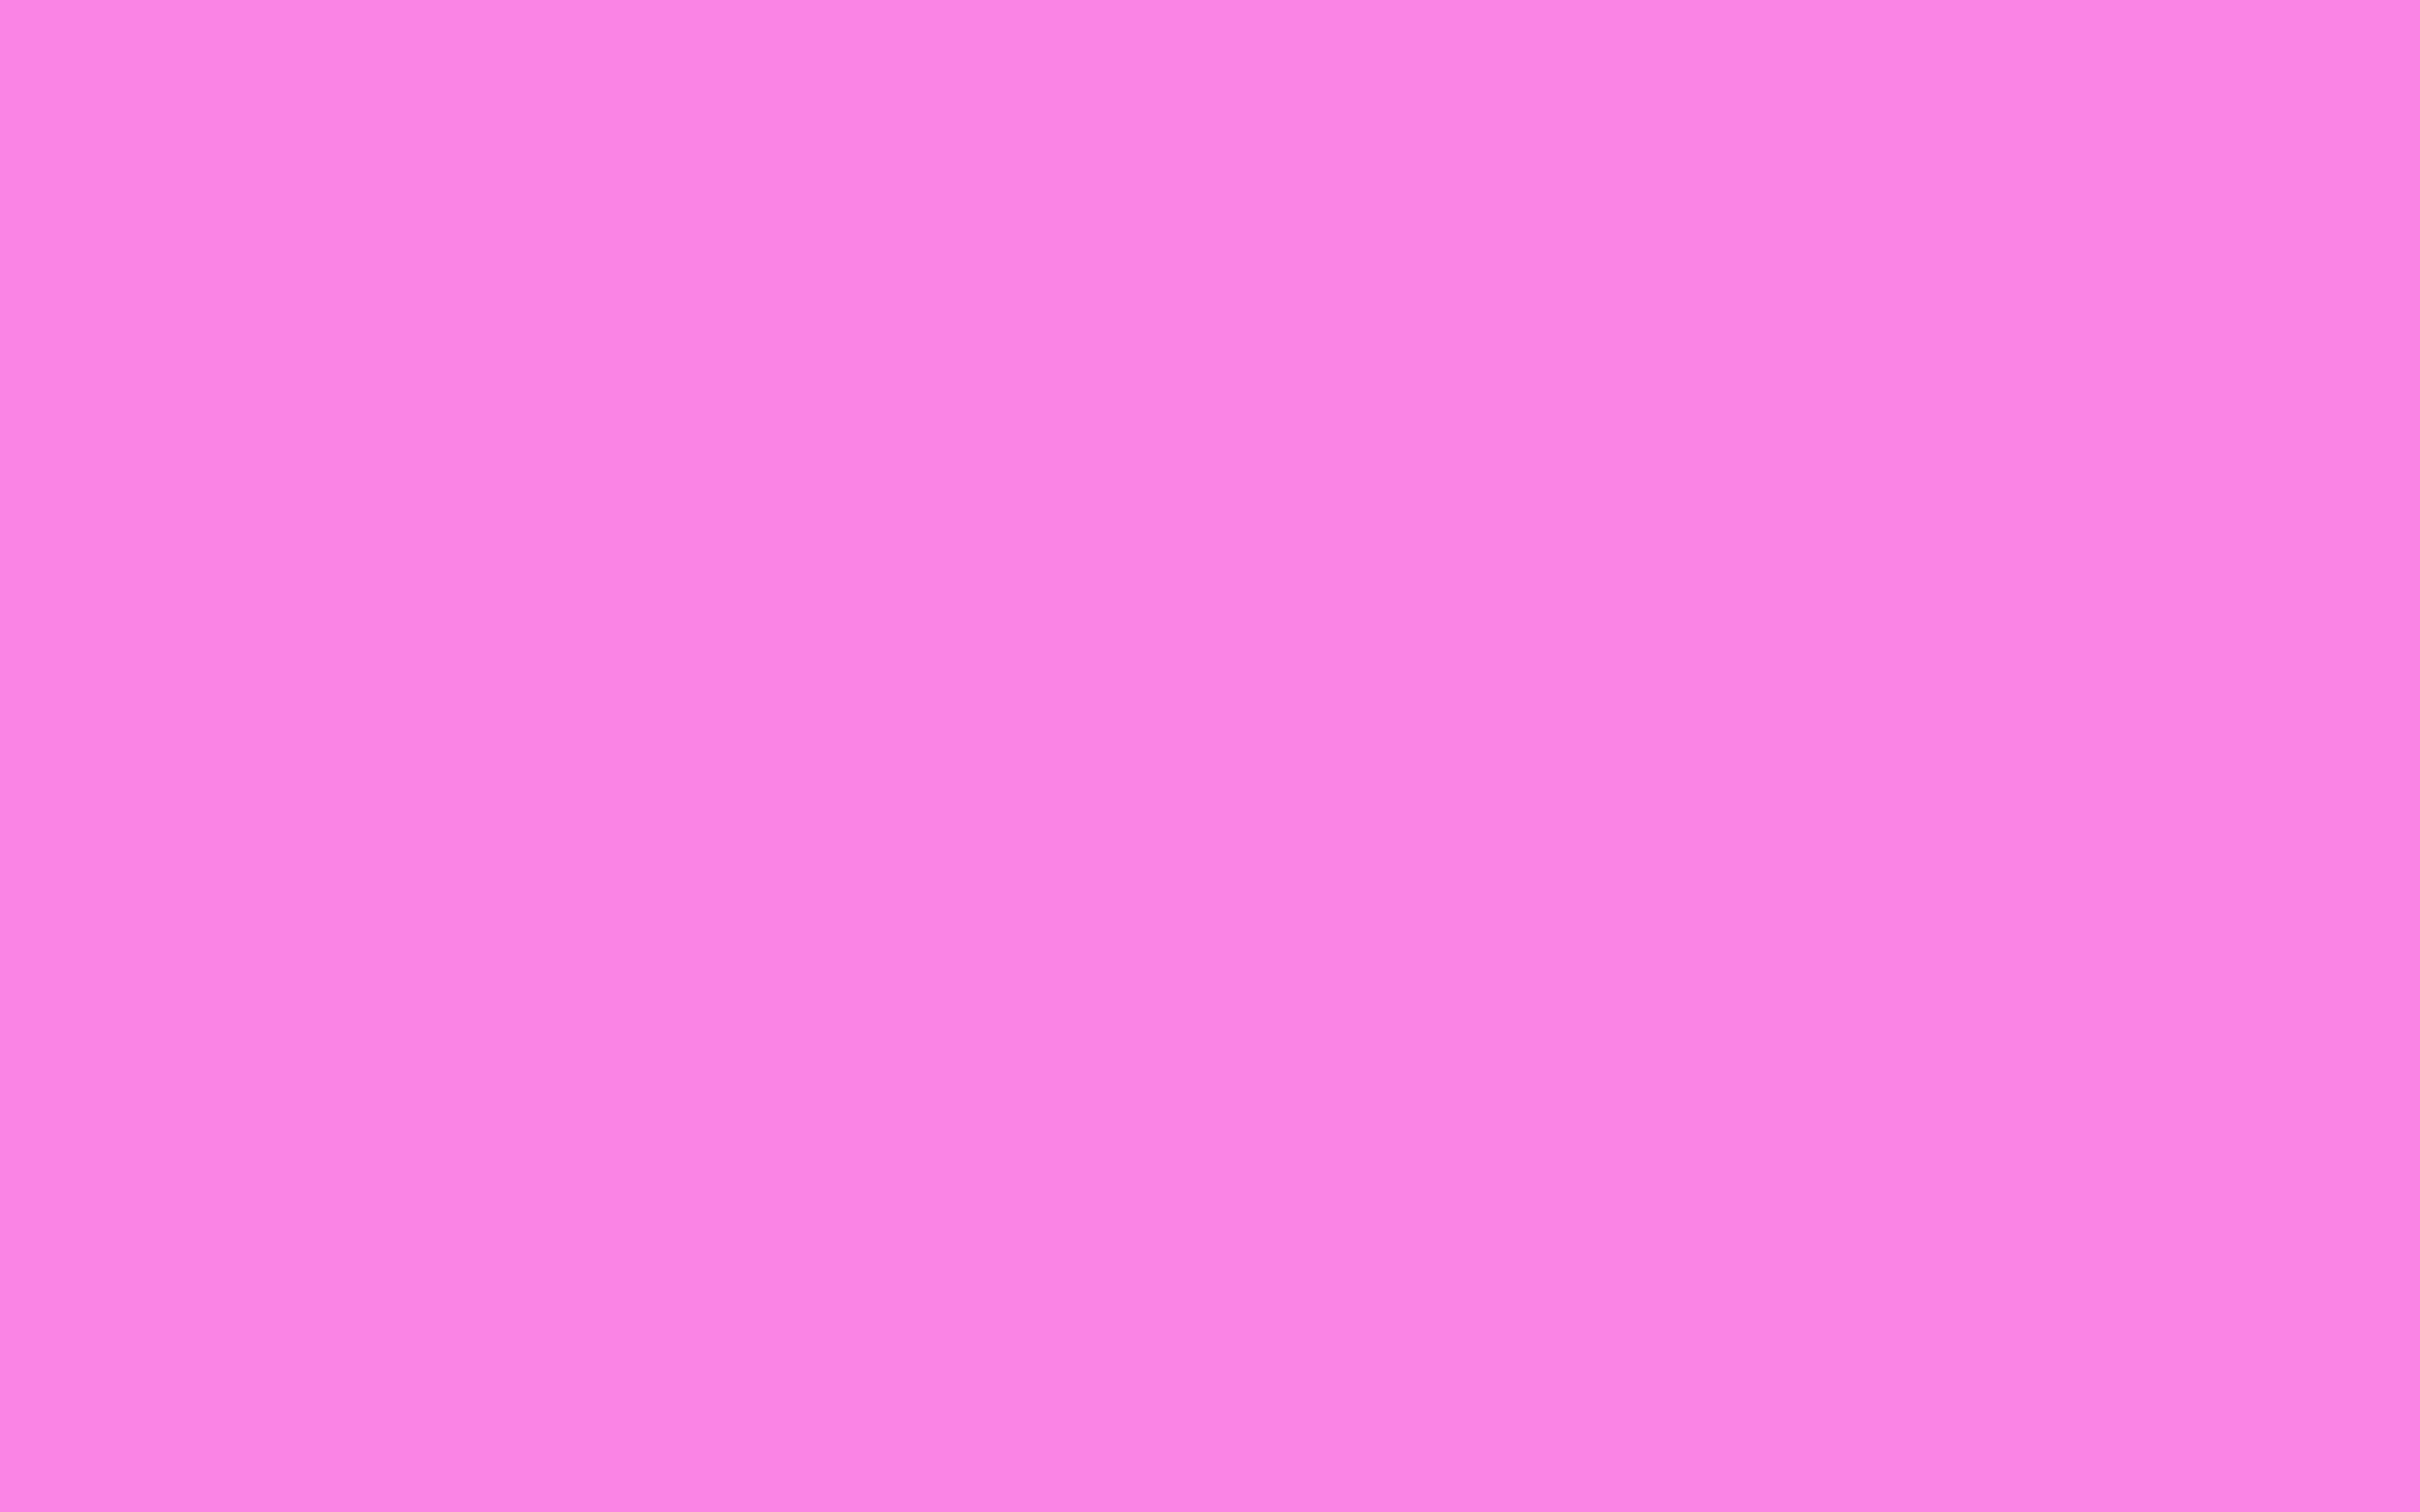 2560x1600 Pale Magenta Solid Color Background